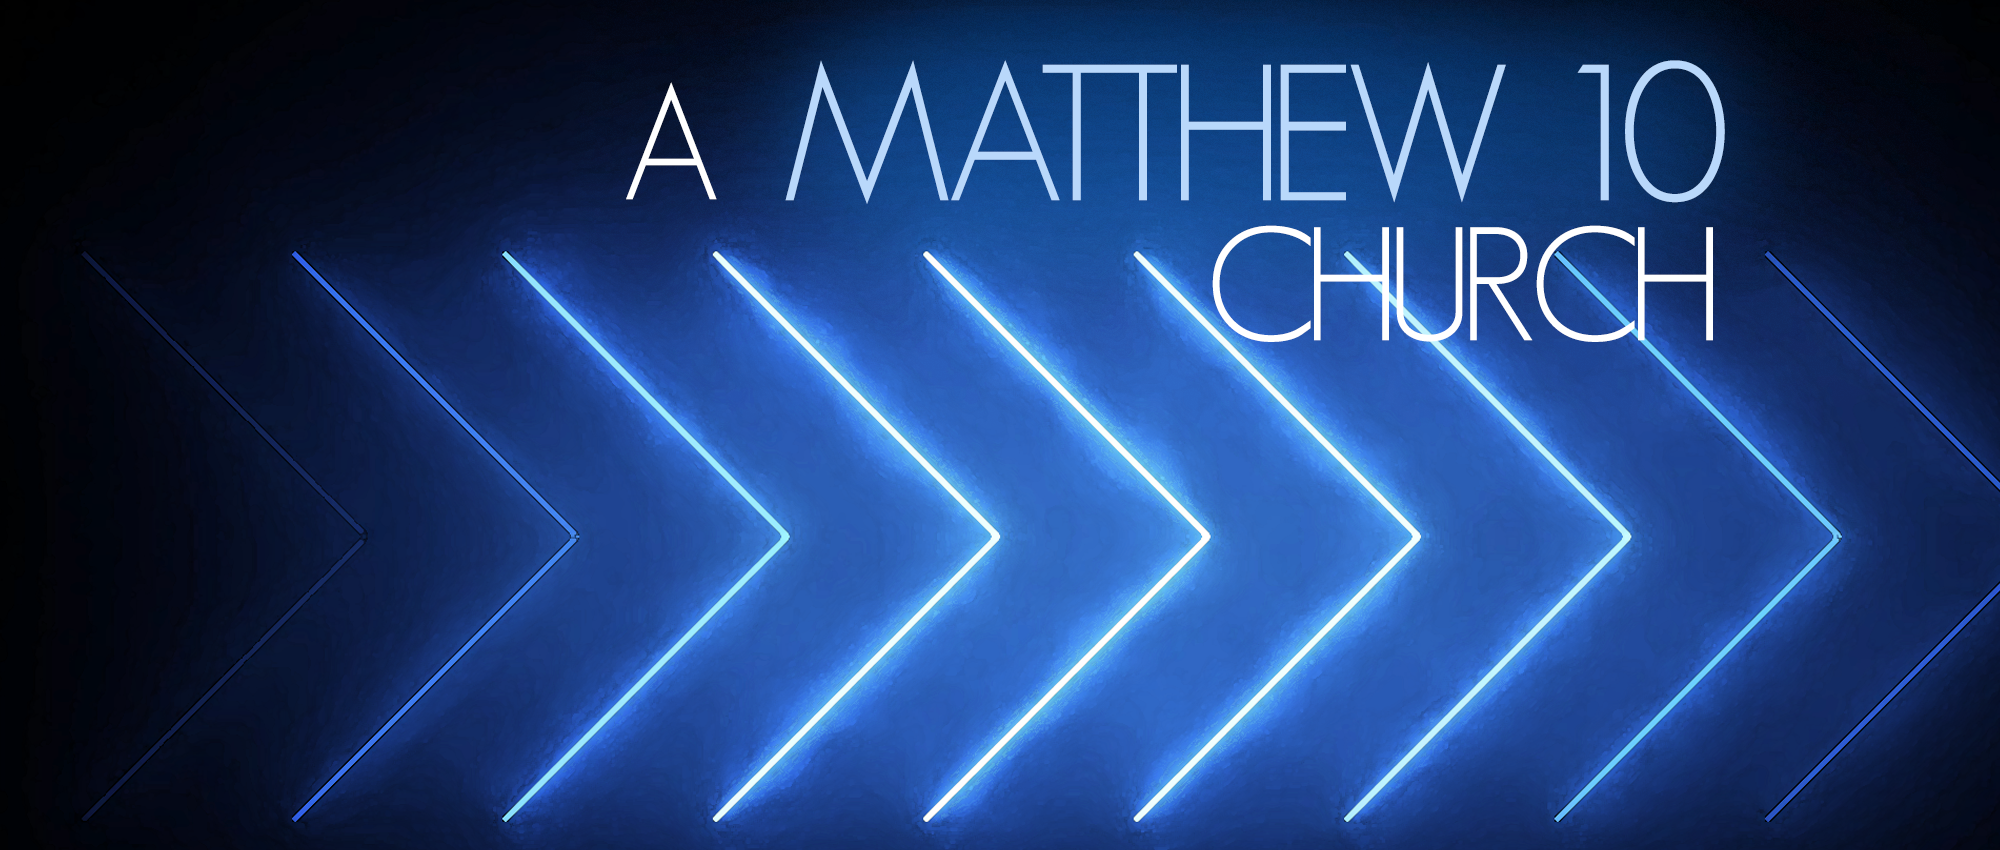 A Matthew 10 Church